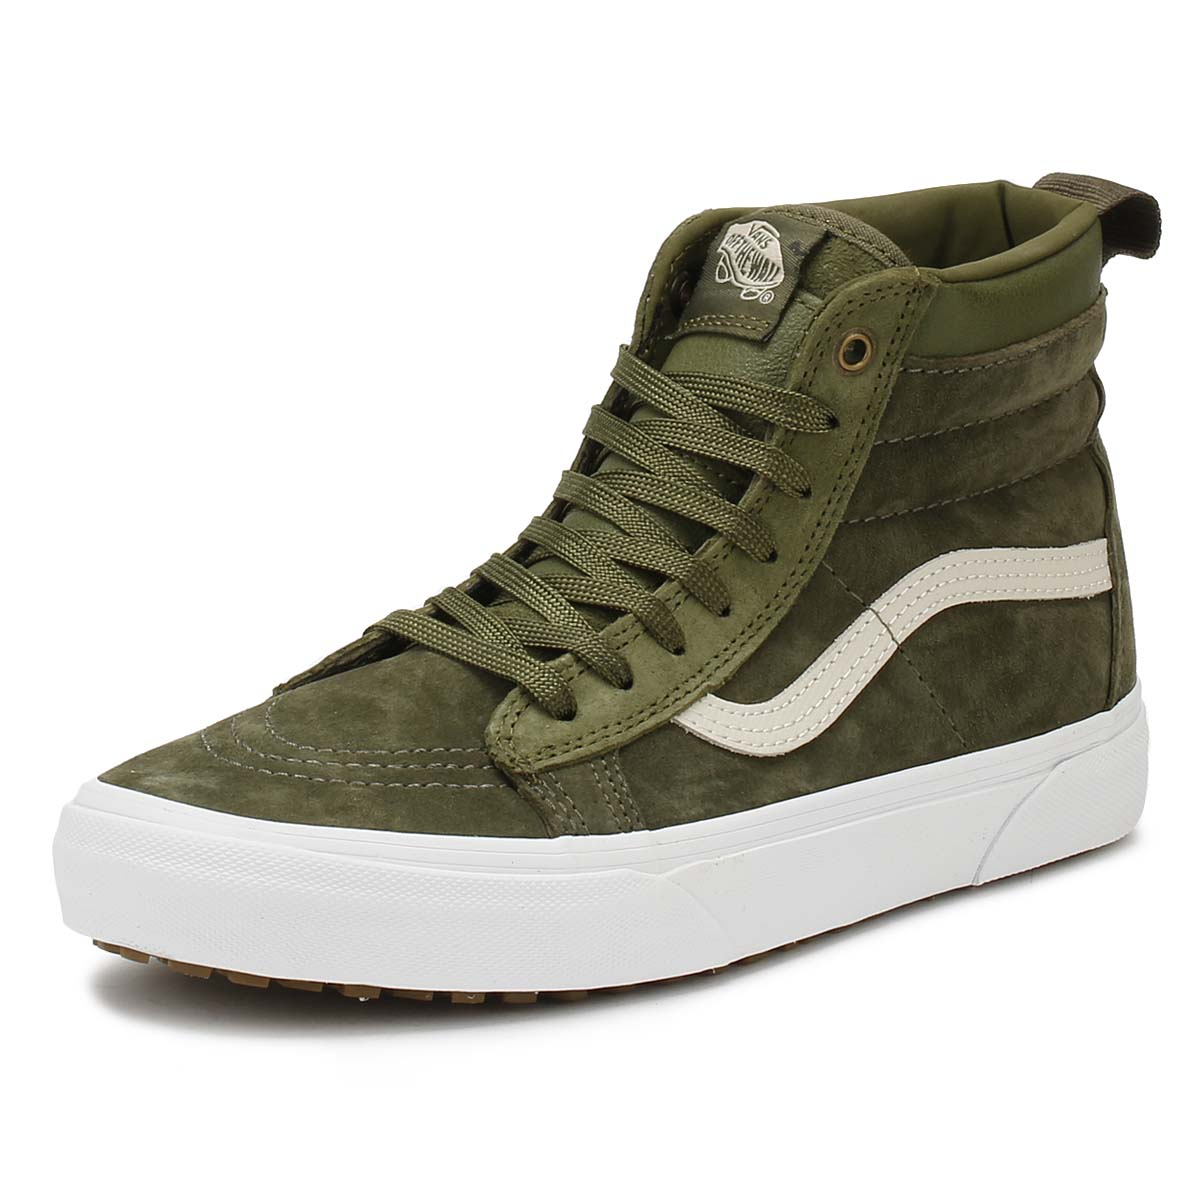 2beae432bc2f37 Details about Vans Mens Trainers Winter Moss Military Green SK8-Hi MTE  Casual Skate Shoes